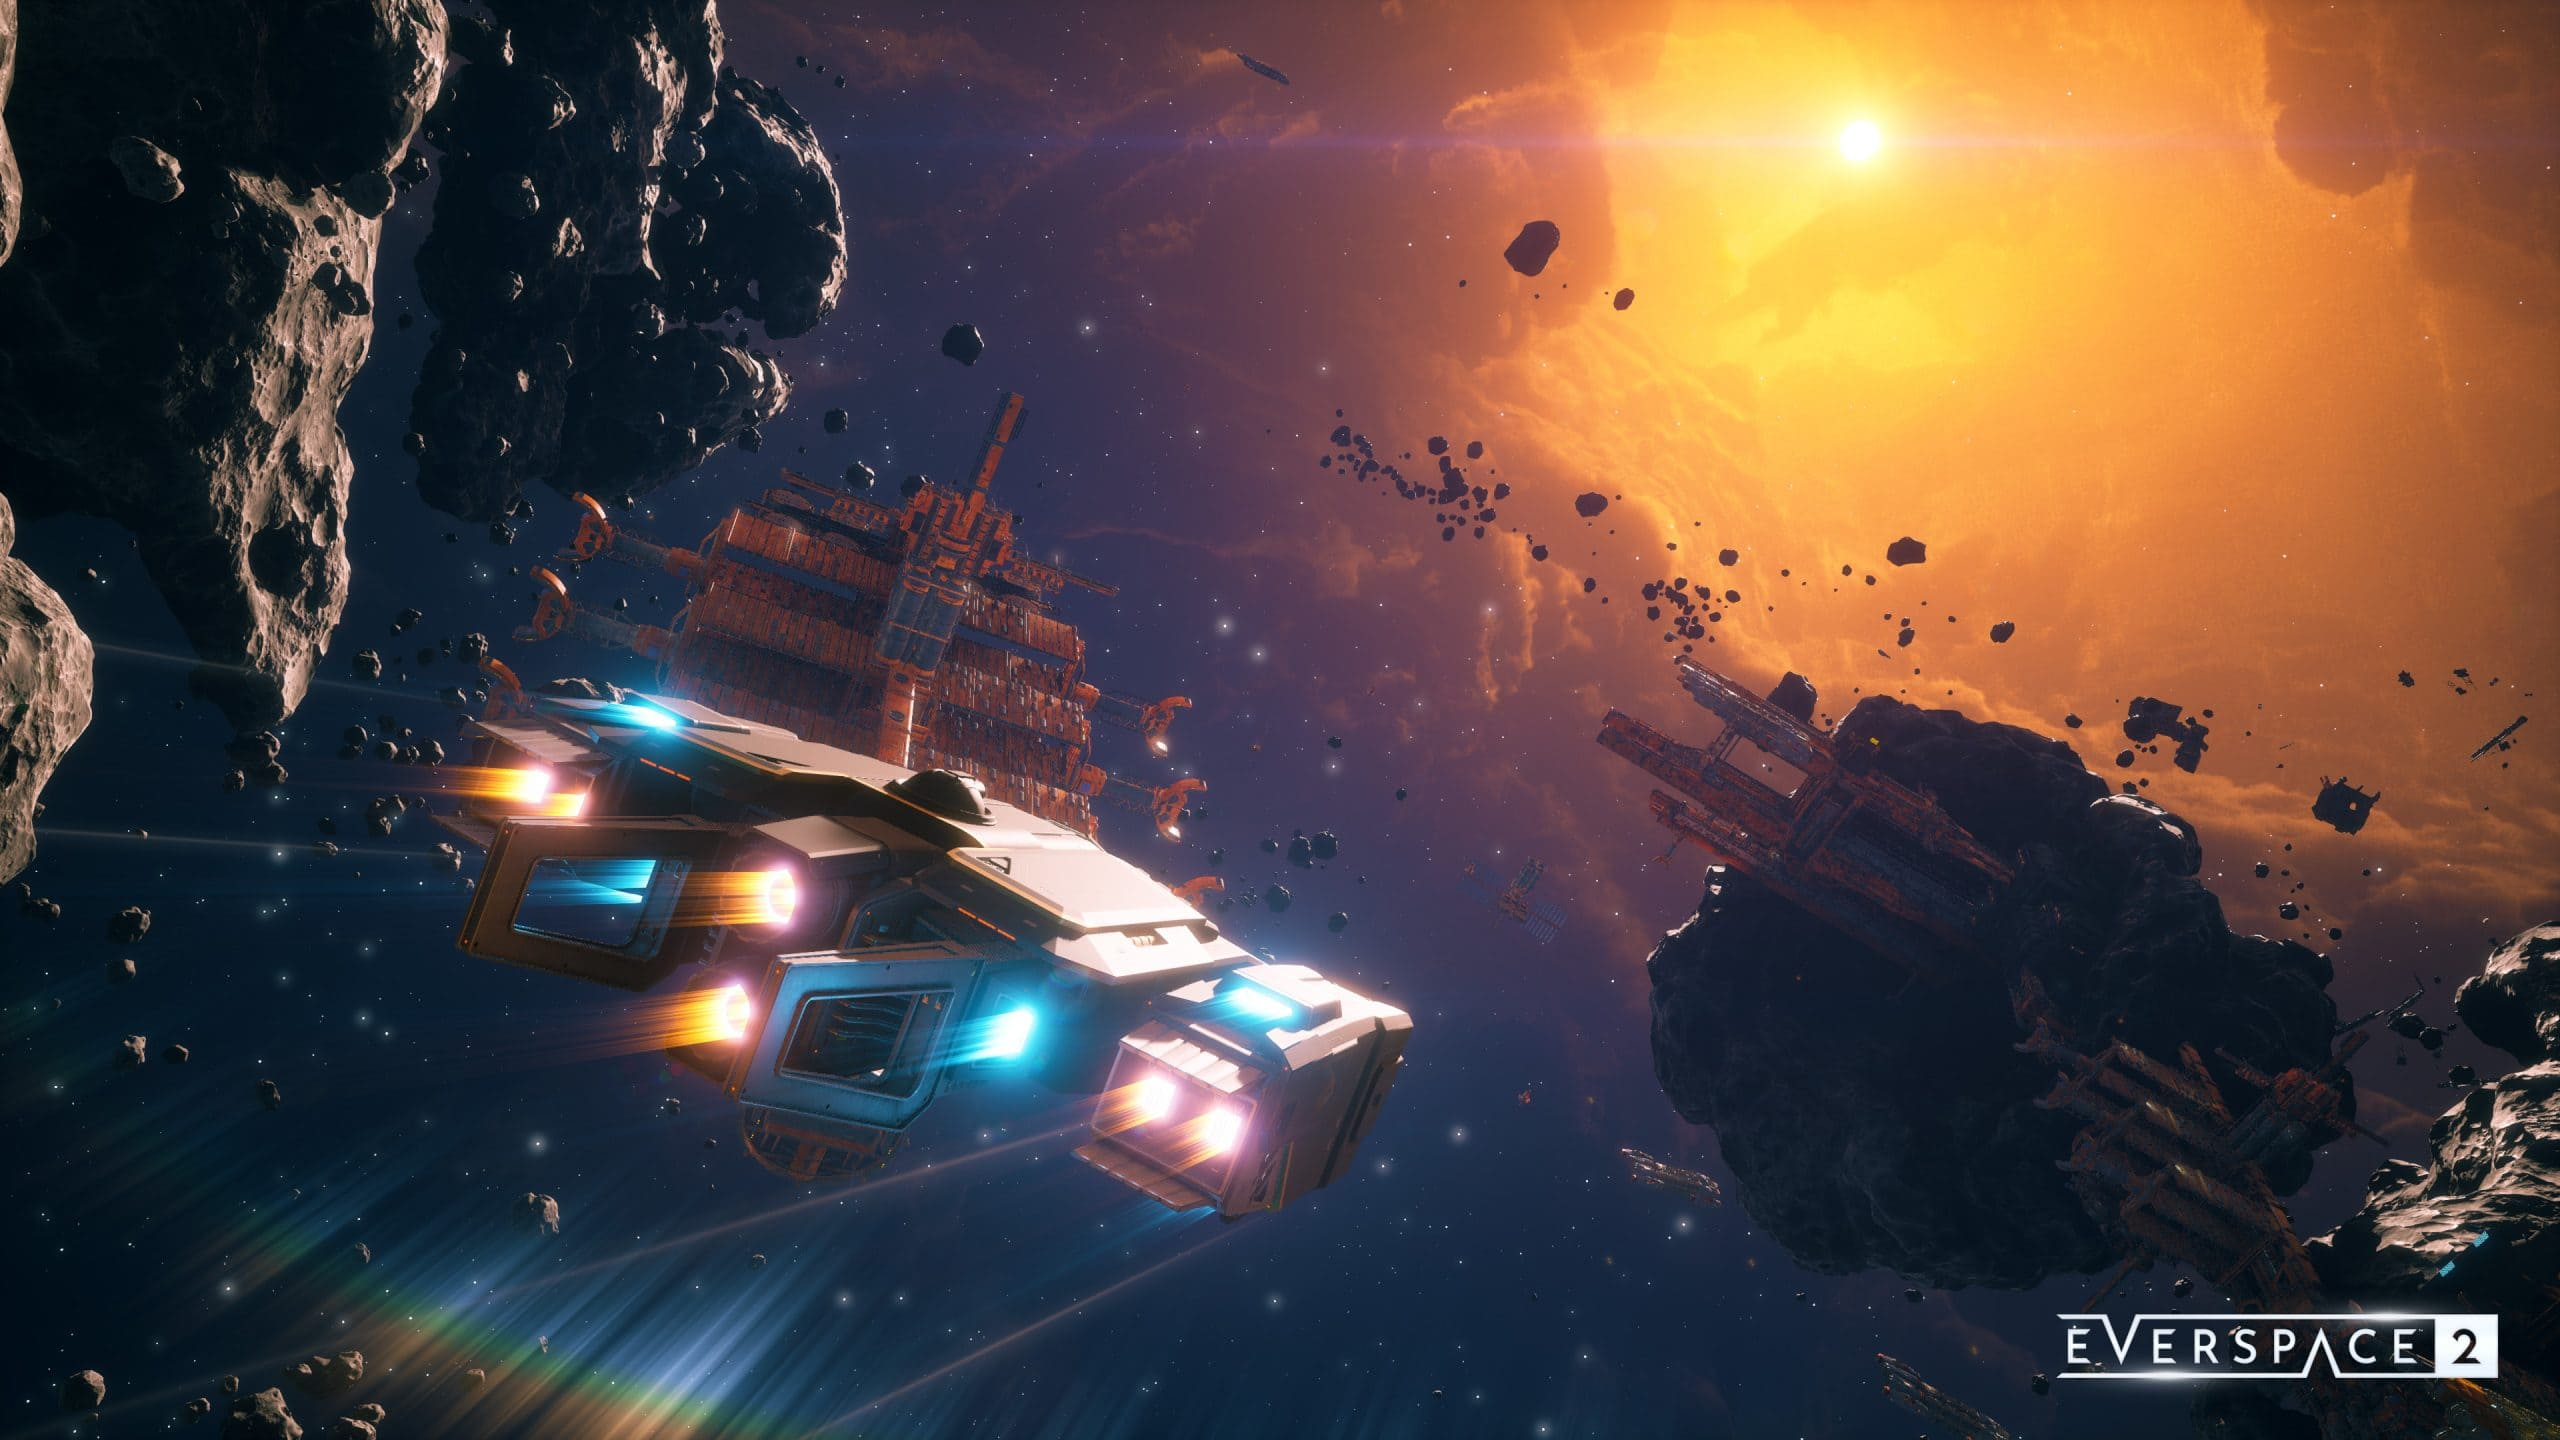 Everspace 2 is shaping up to be one of the best RPG Space Shooters of all time